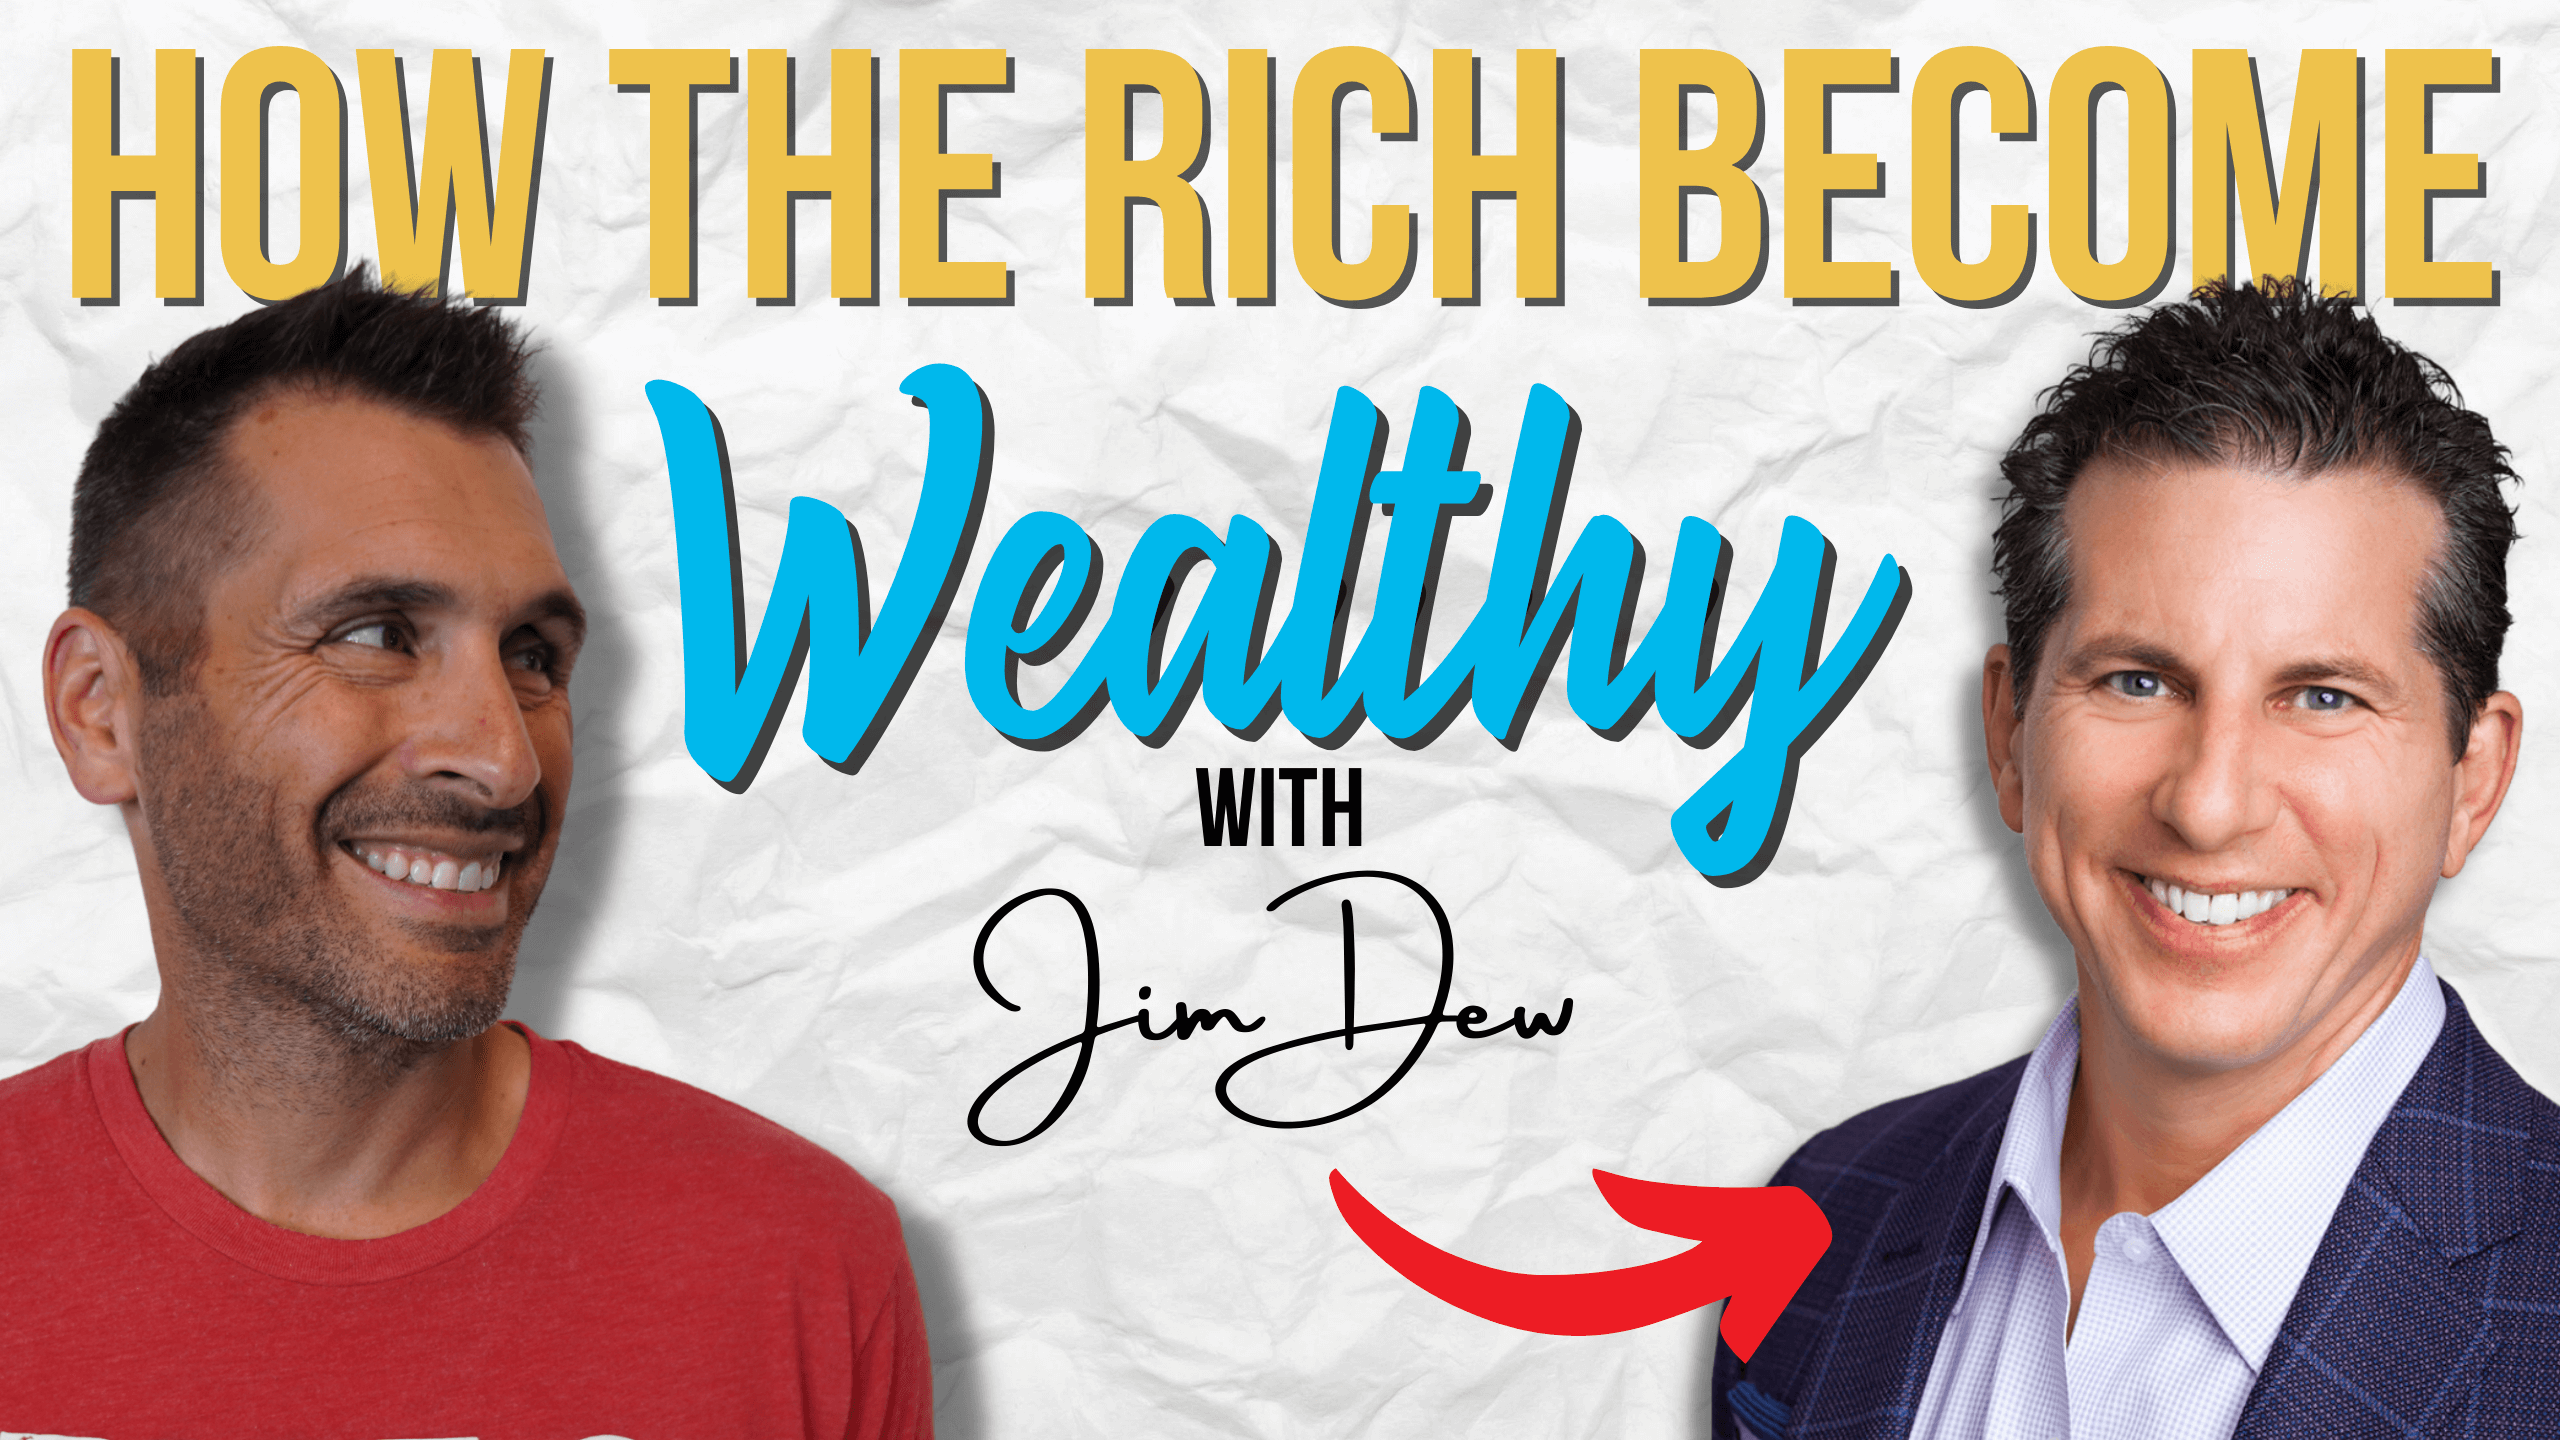 How The Rich Become Wealthy W/ Jim Dew